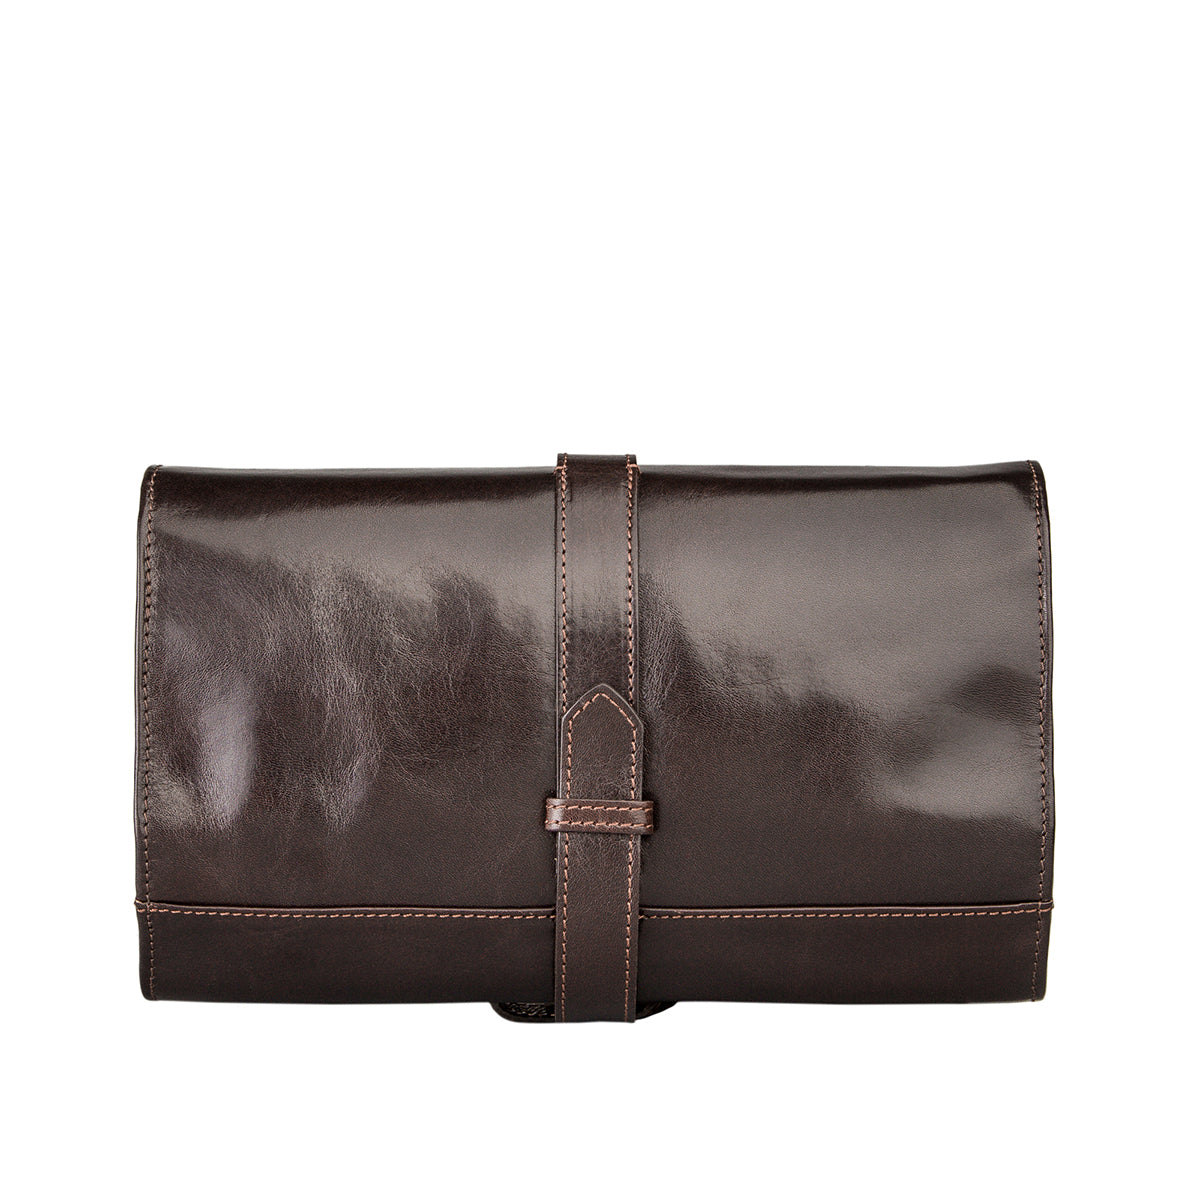 Image 4 of the 'Pratello' Dark Chocolate Veg-Tanned Leather Wash Bag